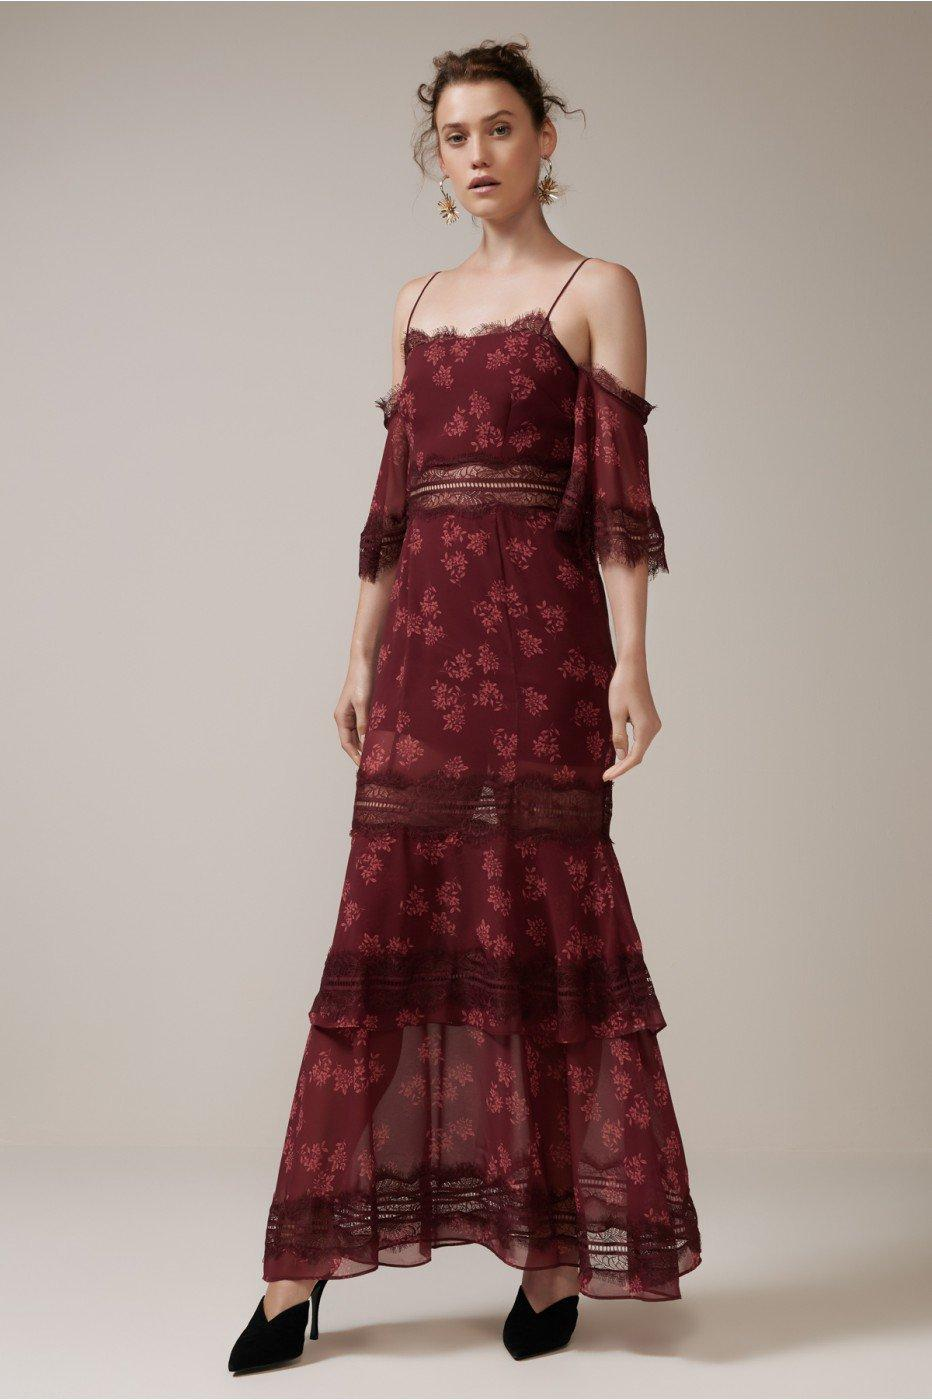 Keepsake Moonlight Gown In Plum Floral